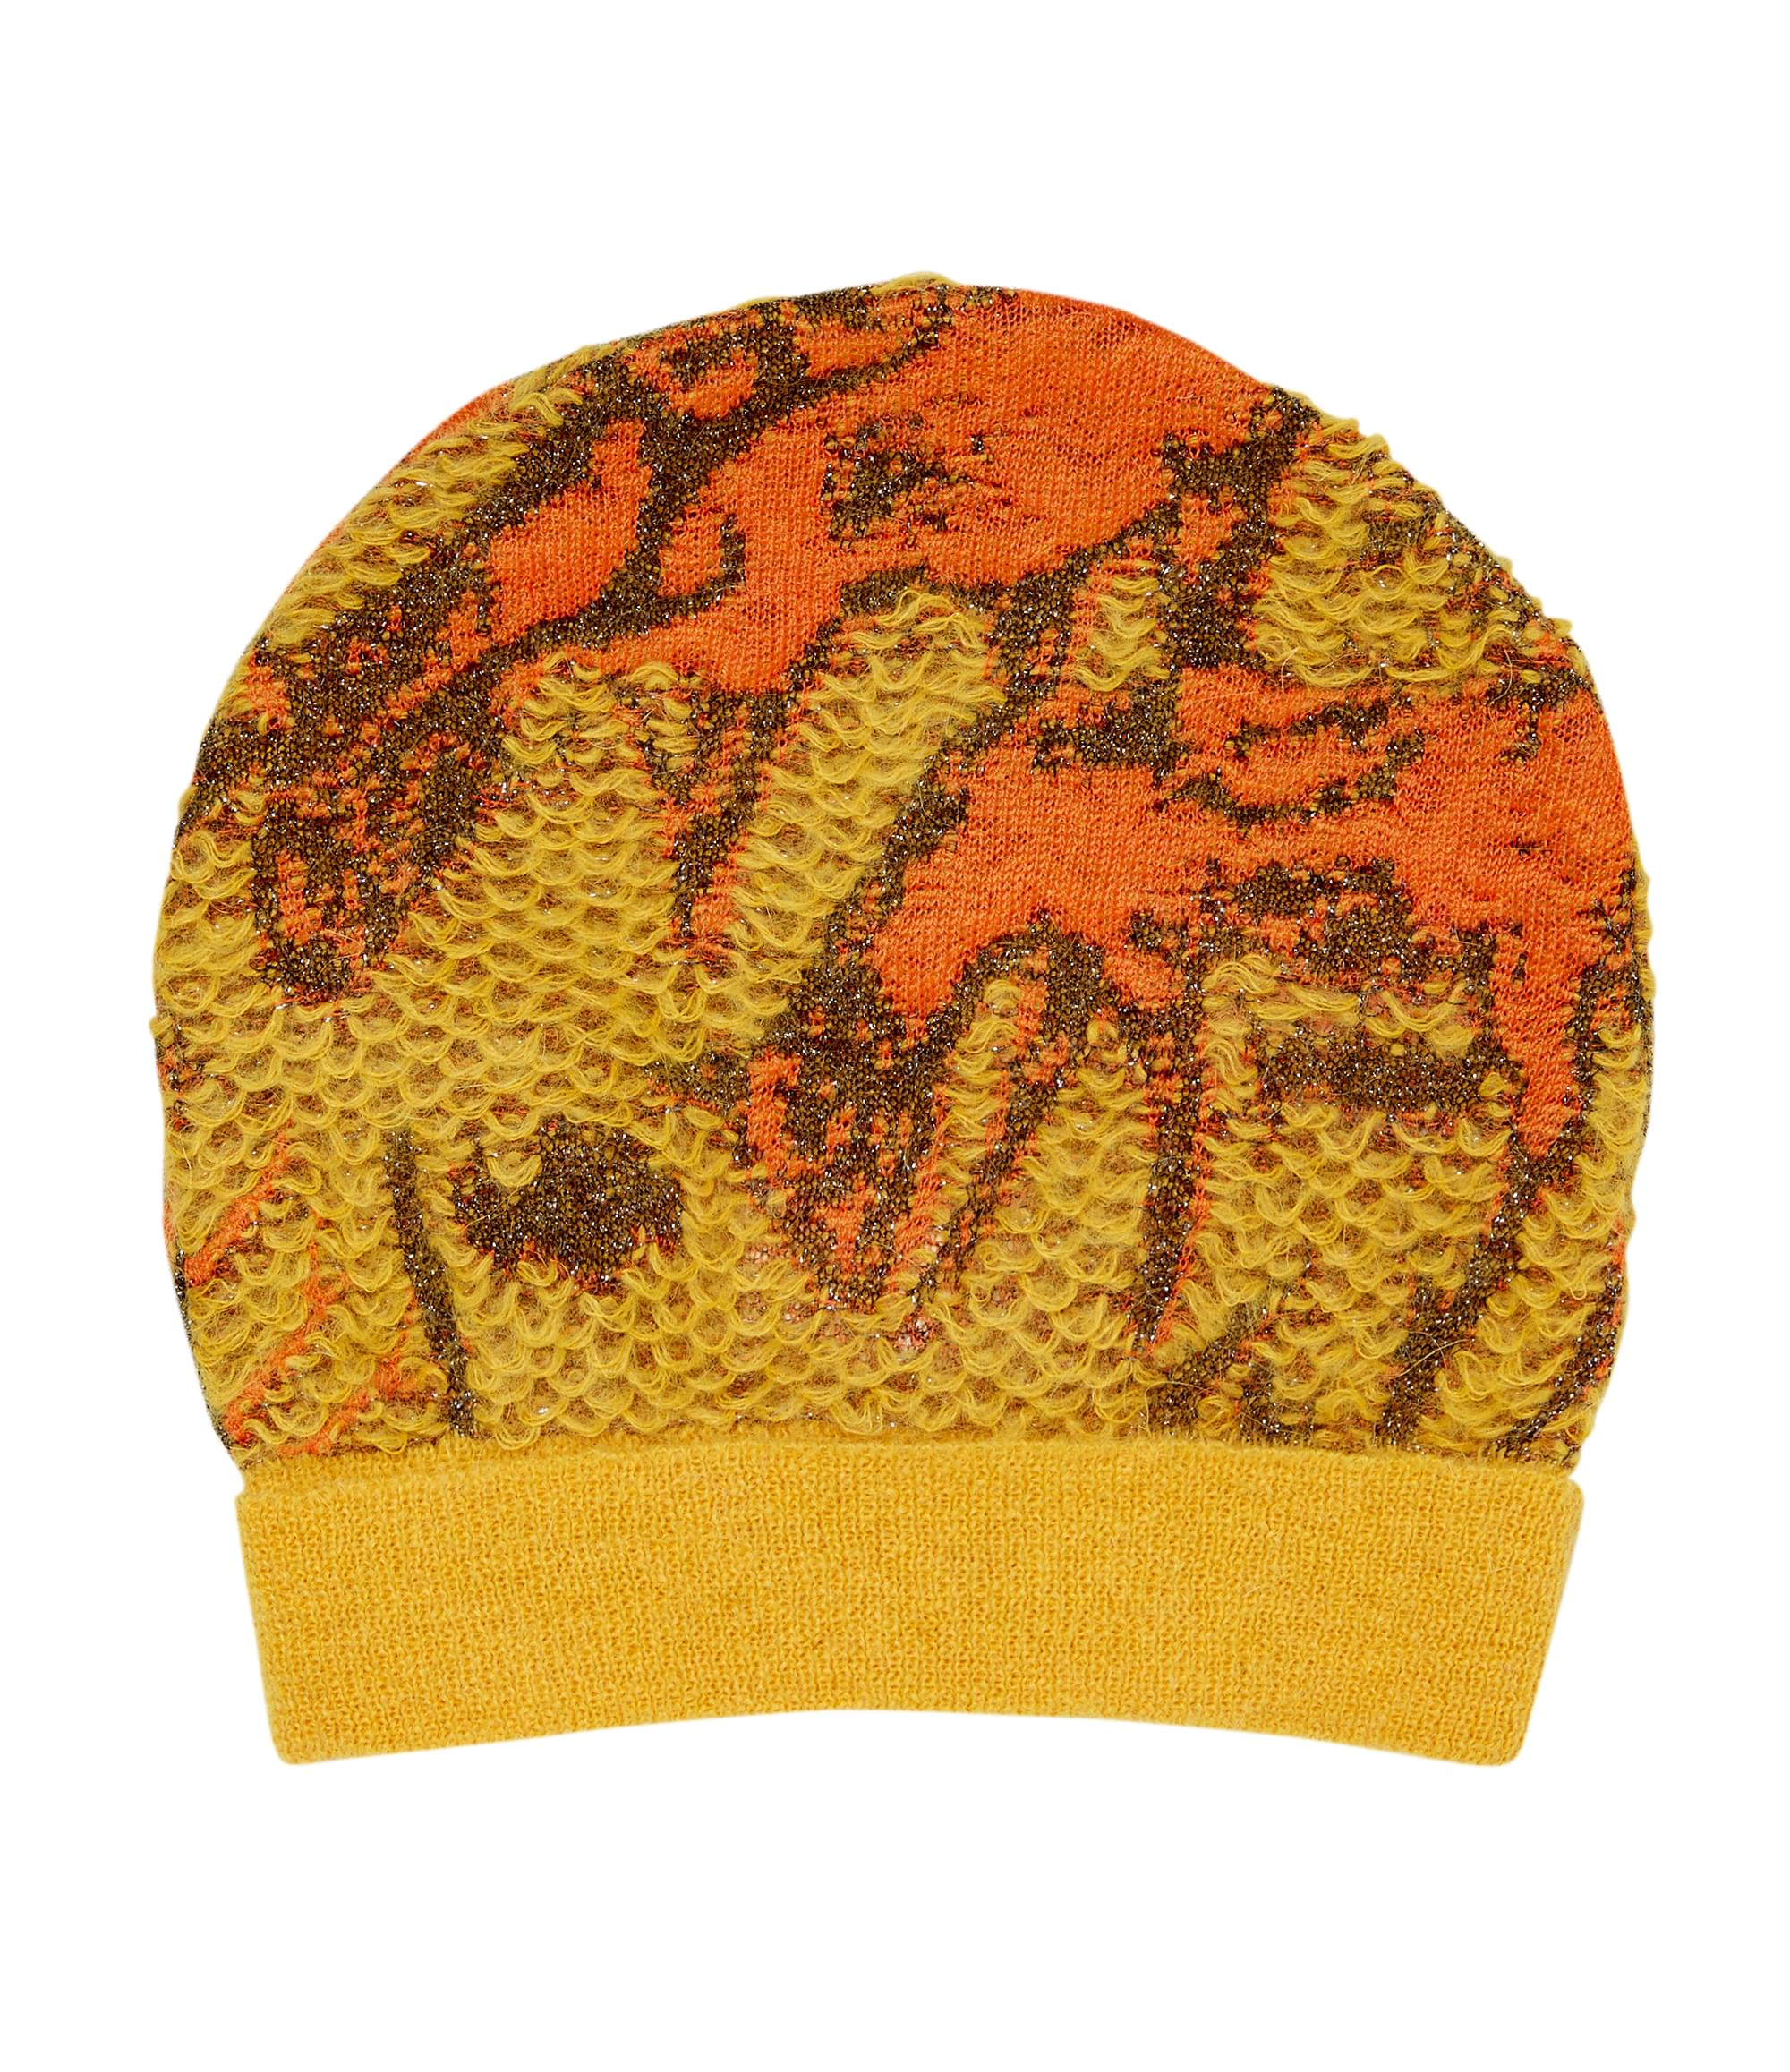 Vivienne Westwood Knitted Yellow Deer Beanie